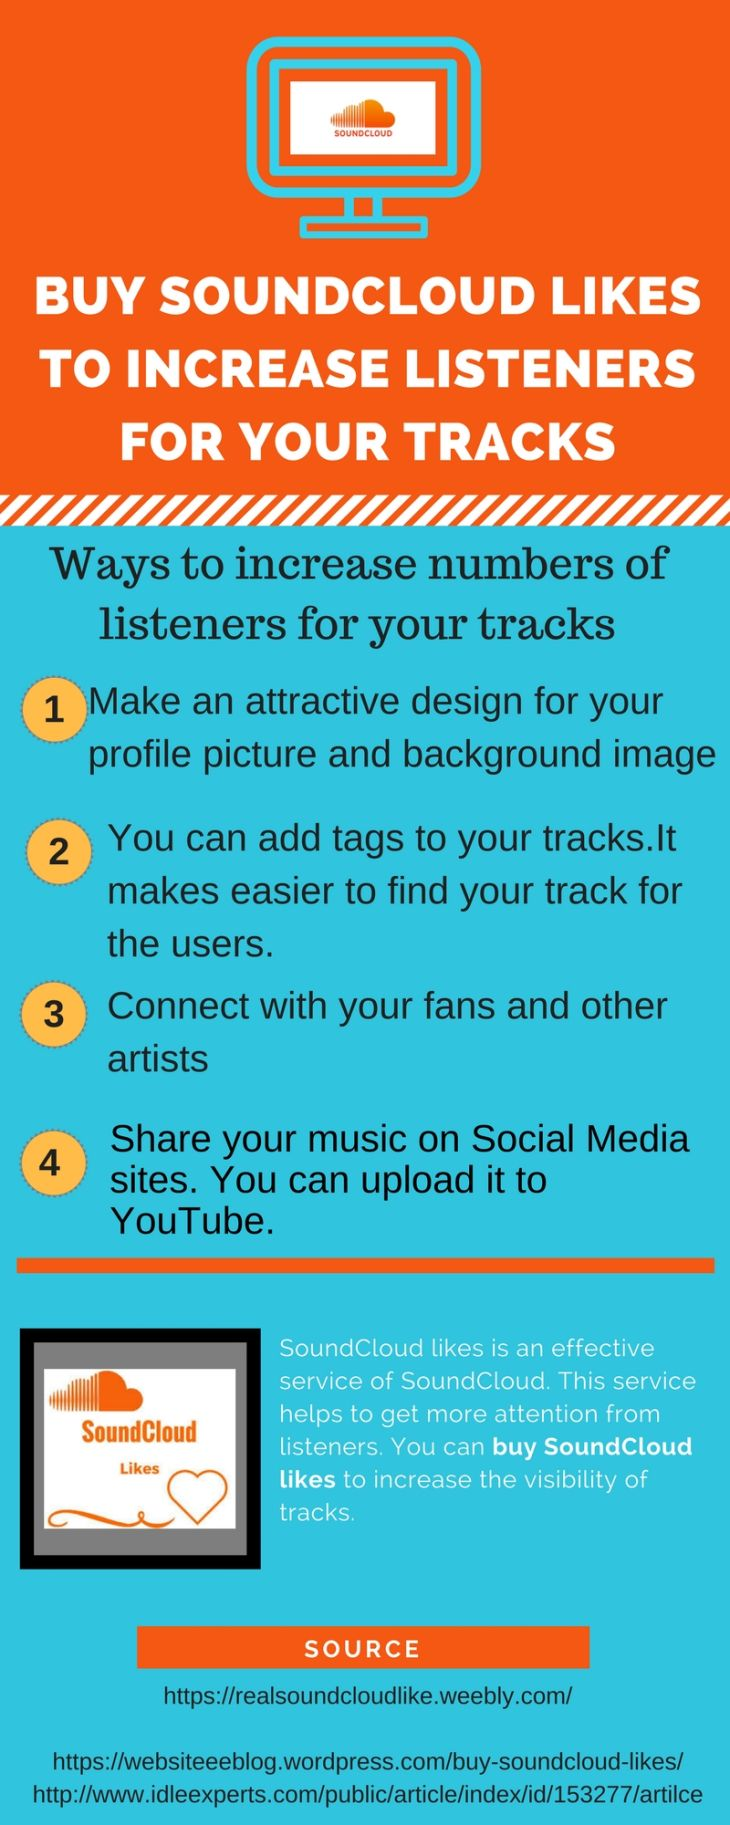 Buy Soundcloud Likes Easy Ways To Promote Your Band Soundcloud Soundcloud Music Stuff To Buy